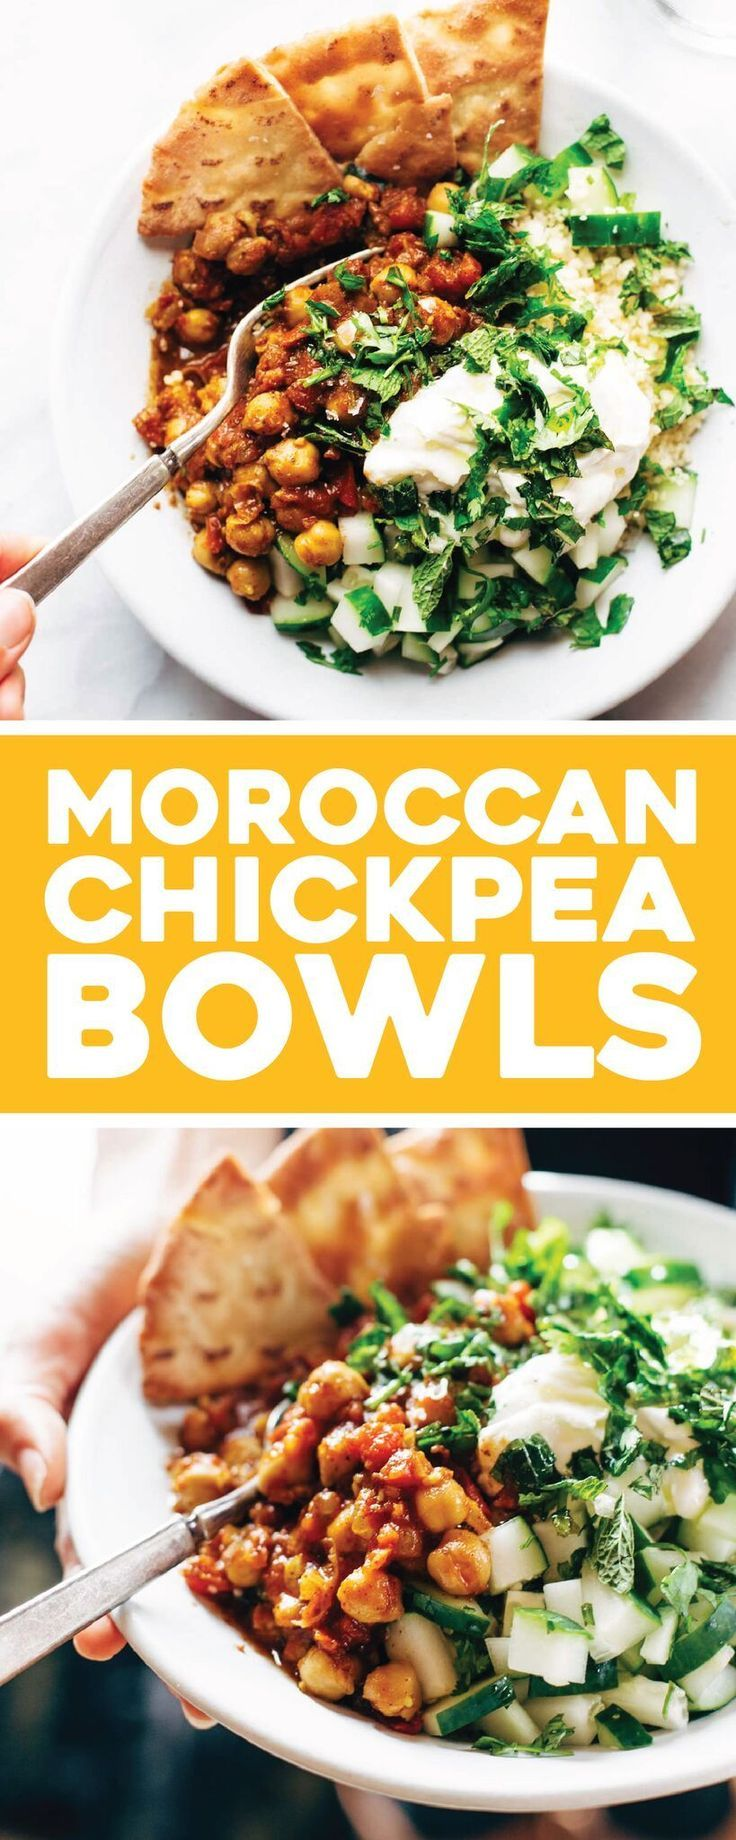 Detox Moroccan Spiced Chickpea Glow Bowl